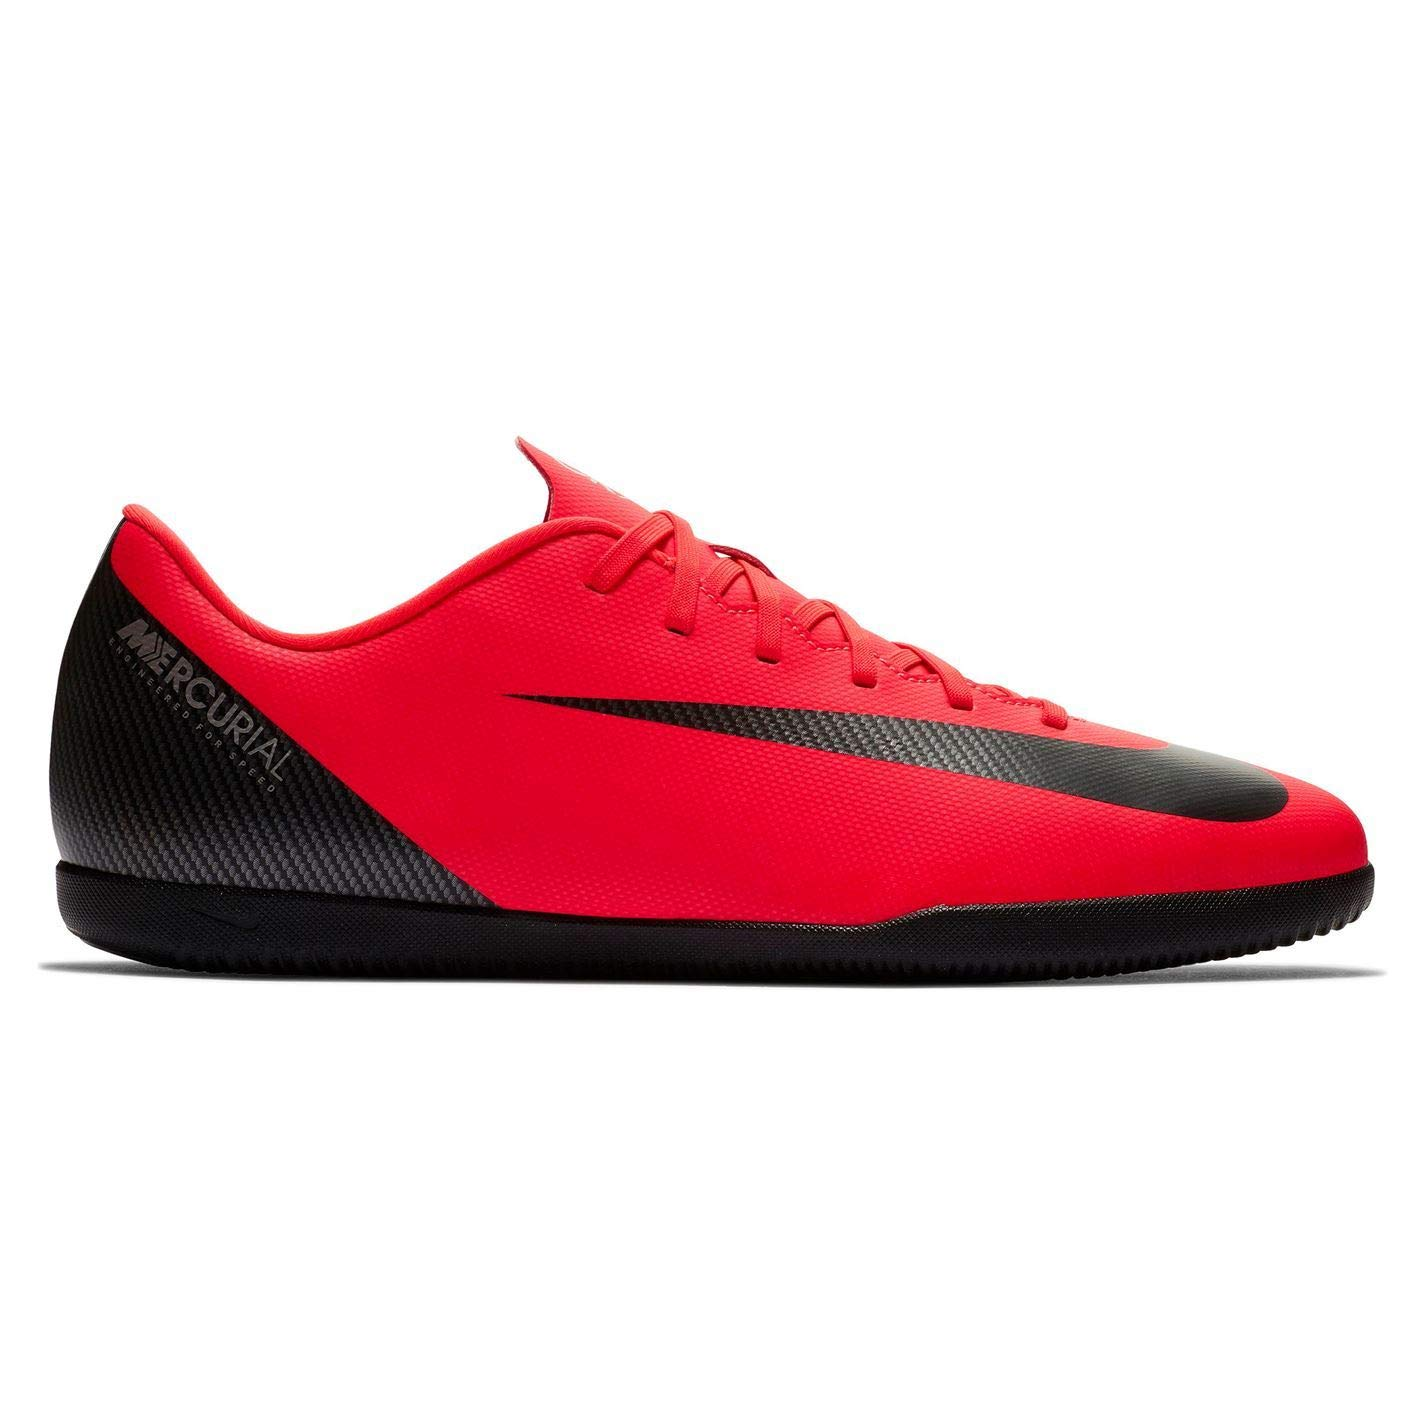 748d12f67496 Nike Mercurial Vapor Club CR7 Indoor Football Trainers Mens Red Soccer Shoes:  Amazon.co.uk: Shoes & Bags